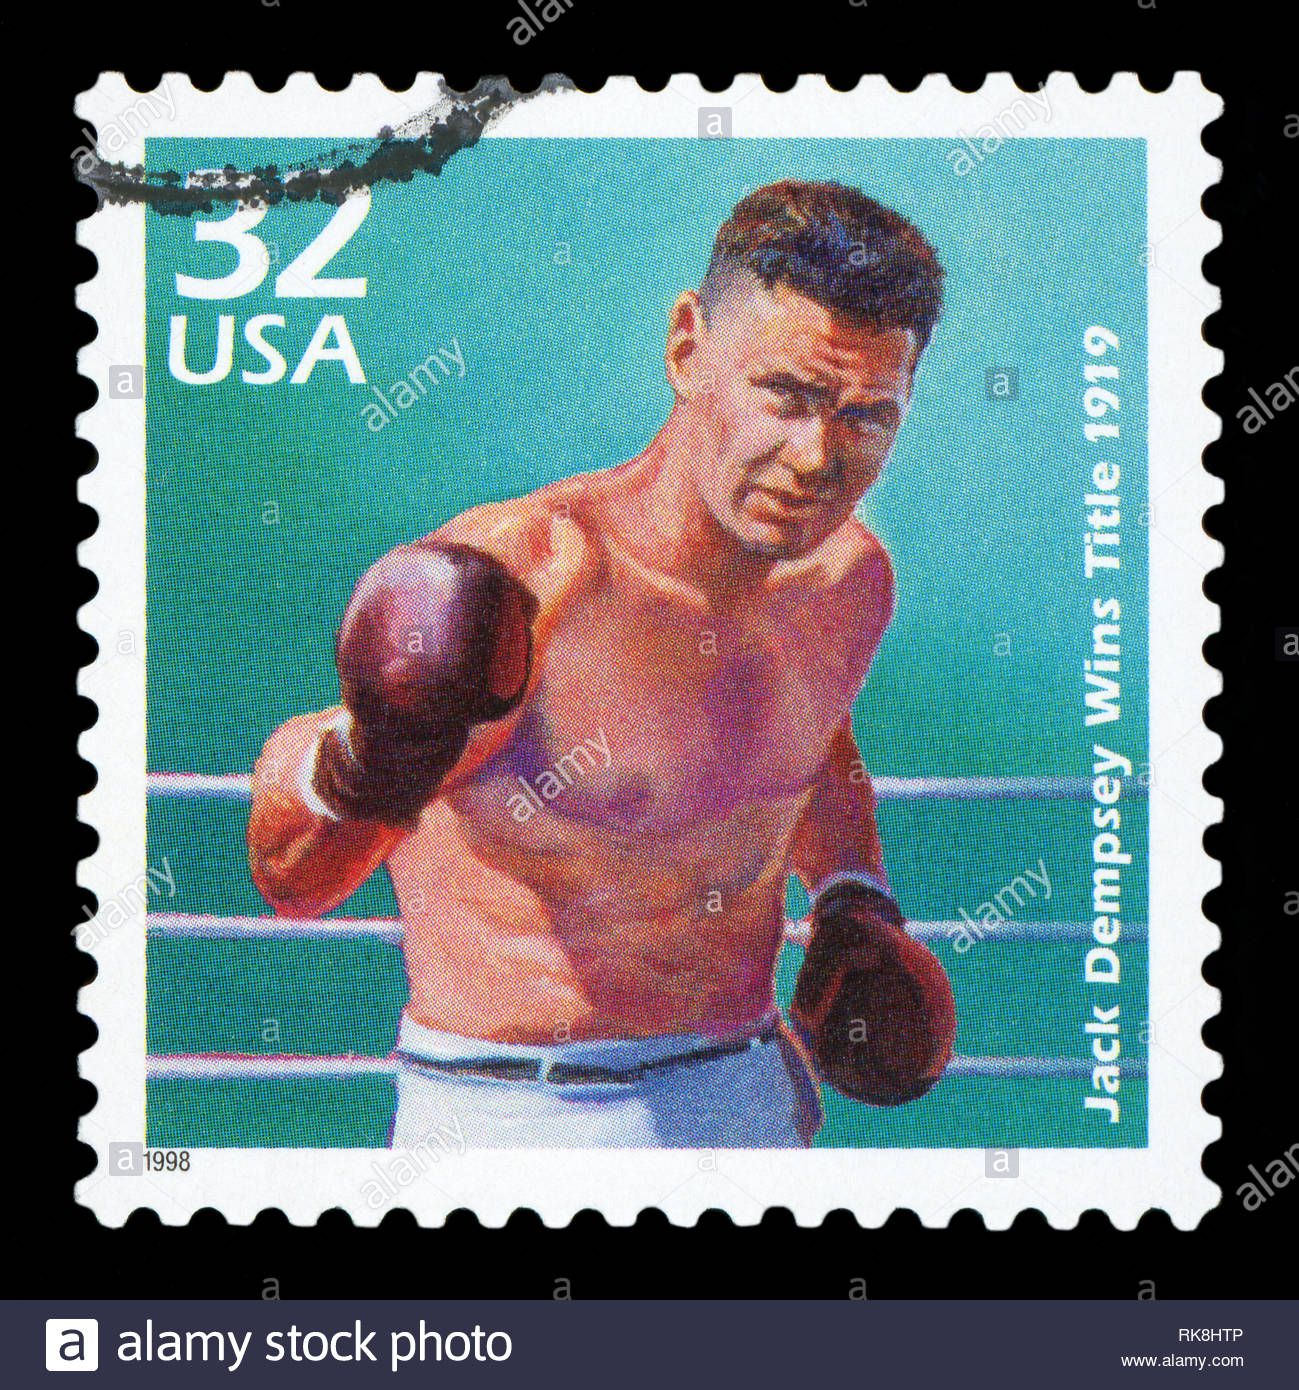 UNITED STATES OF AMERICA - CIRCA 1998: a postage stamp printed in USA showing an image of boxer Jack Dempsey, circa 1998. - Stock Image